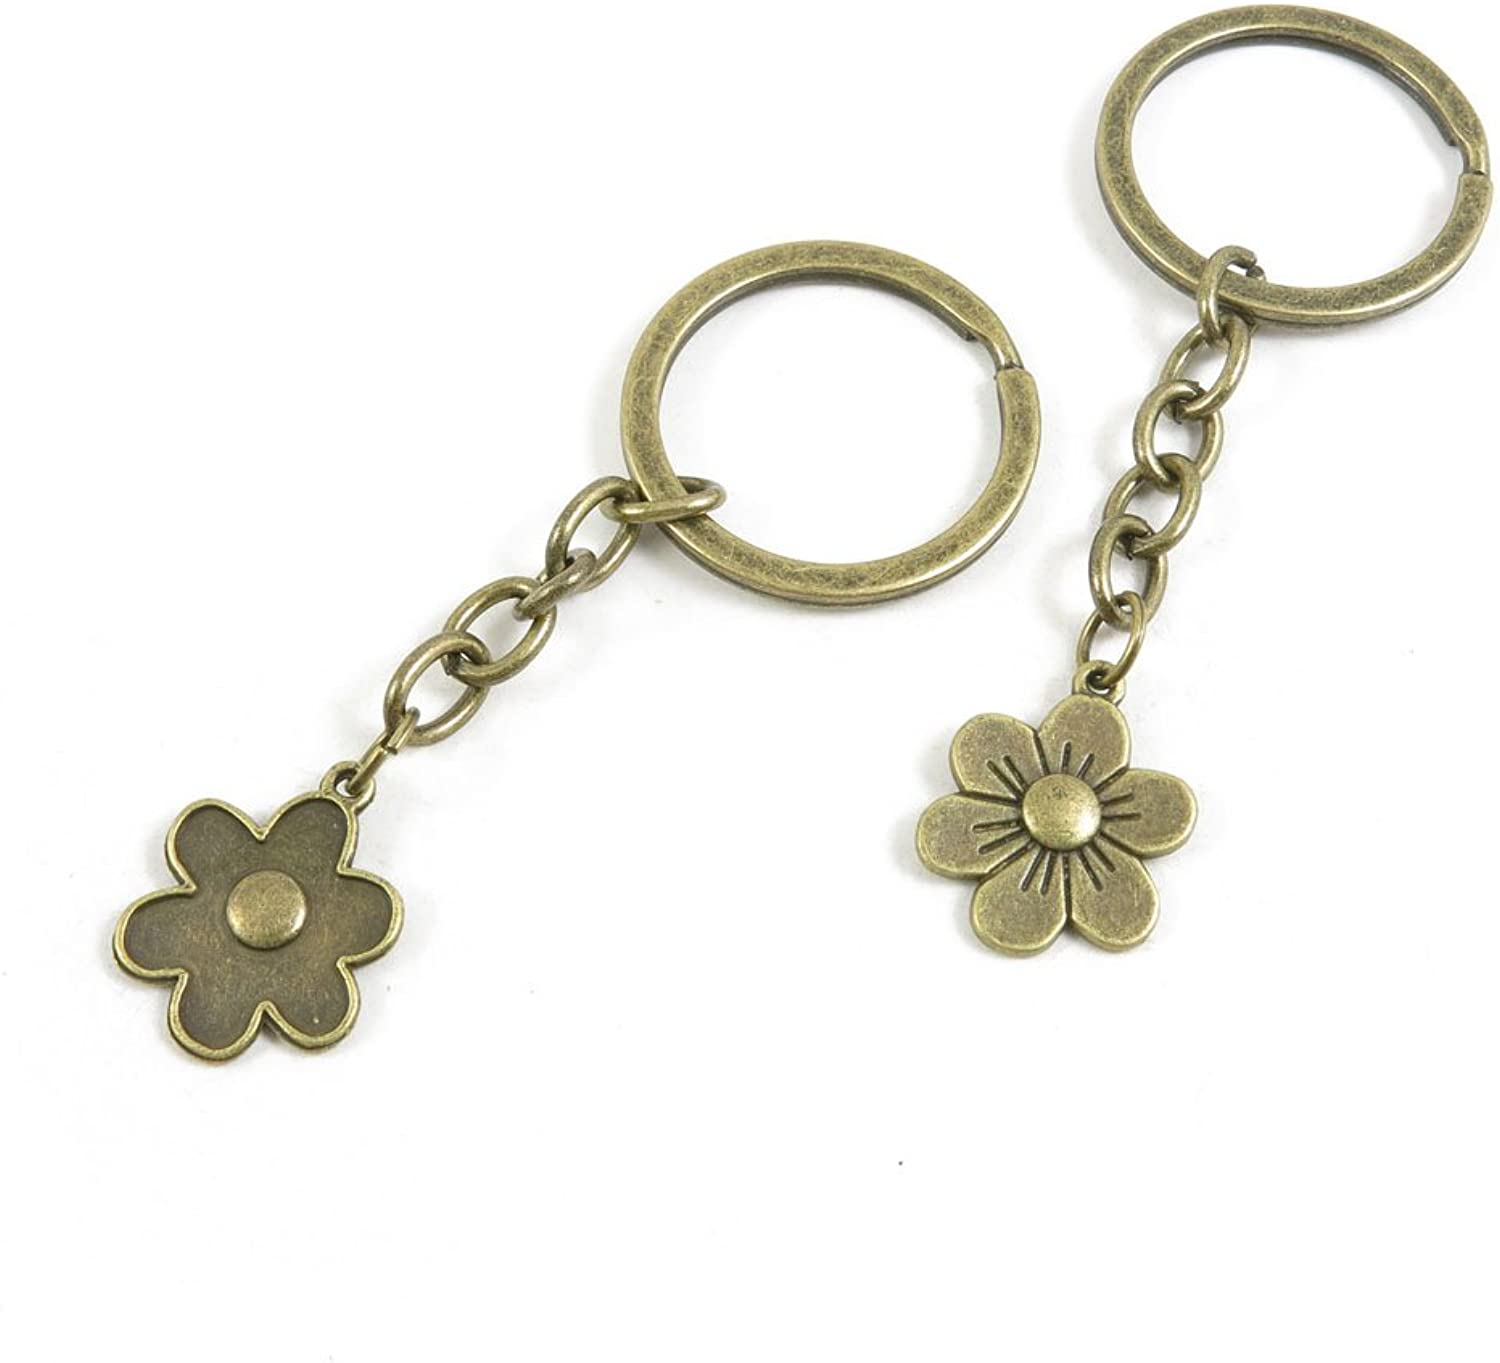 210 Pieces Fashion Jewelry Keyring Keychain Door Car Key Tag Ring Chain Supplier Supply Wholesale Bulk Lots Q2VU6 Cherry Blossoms